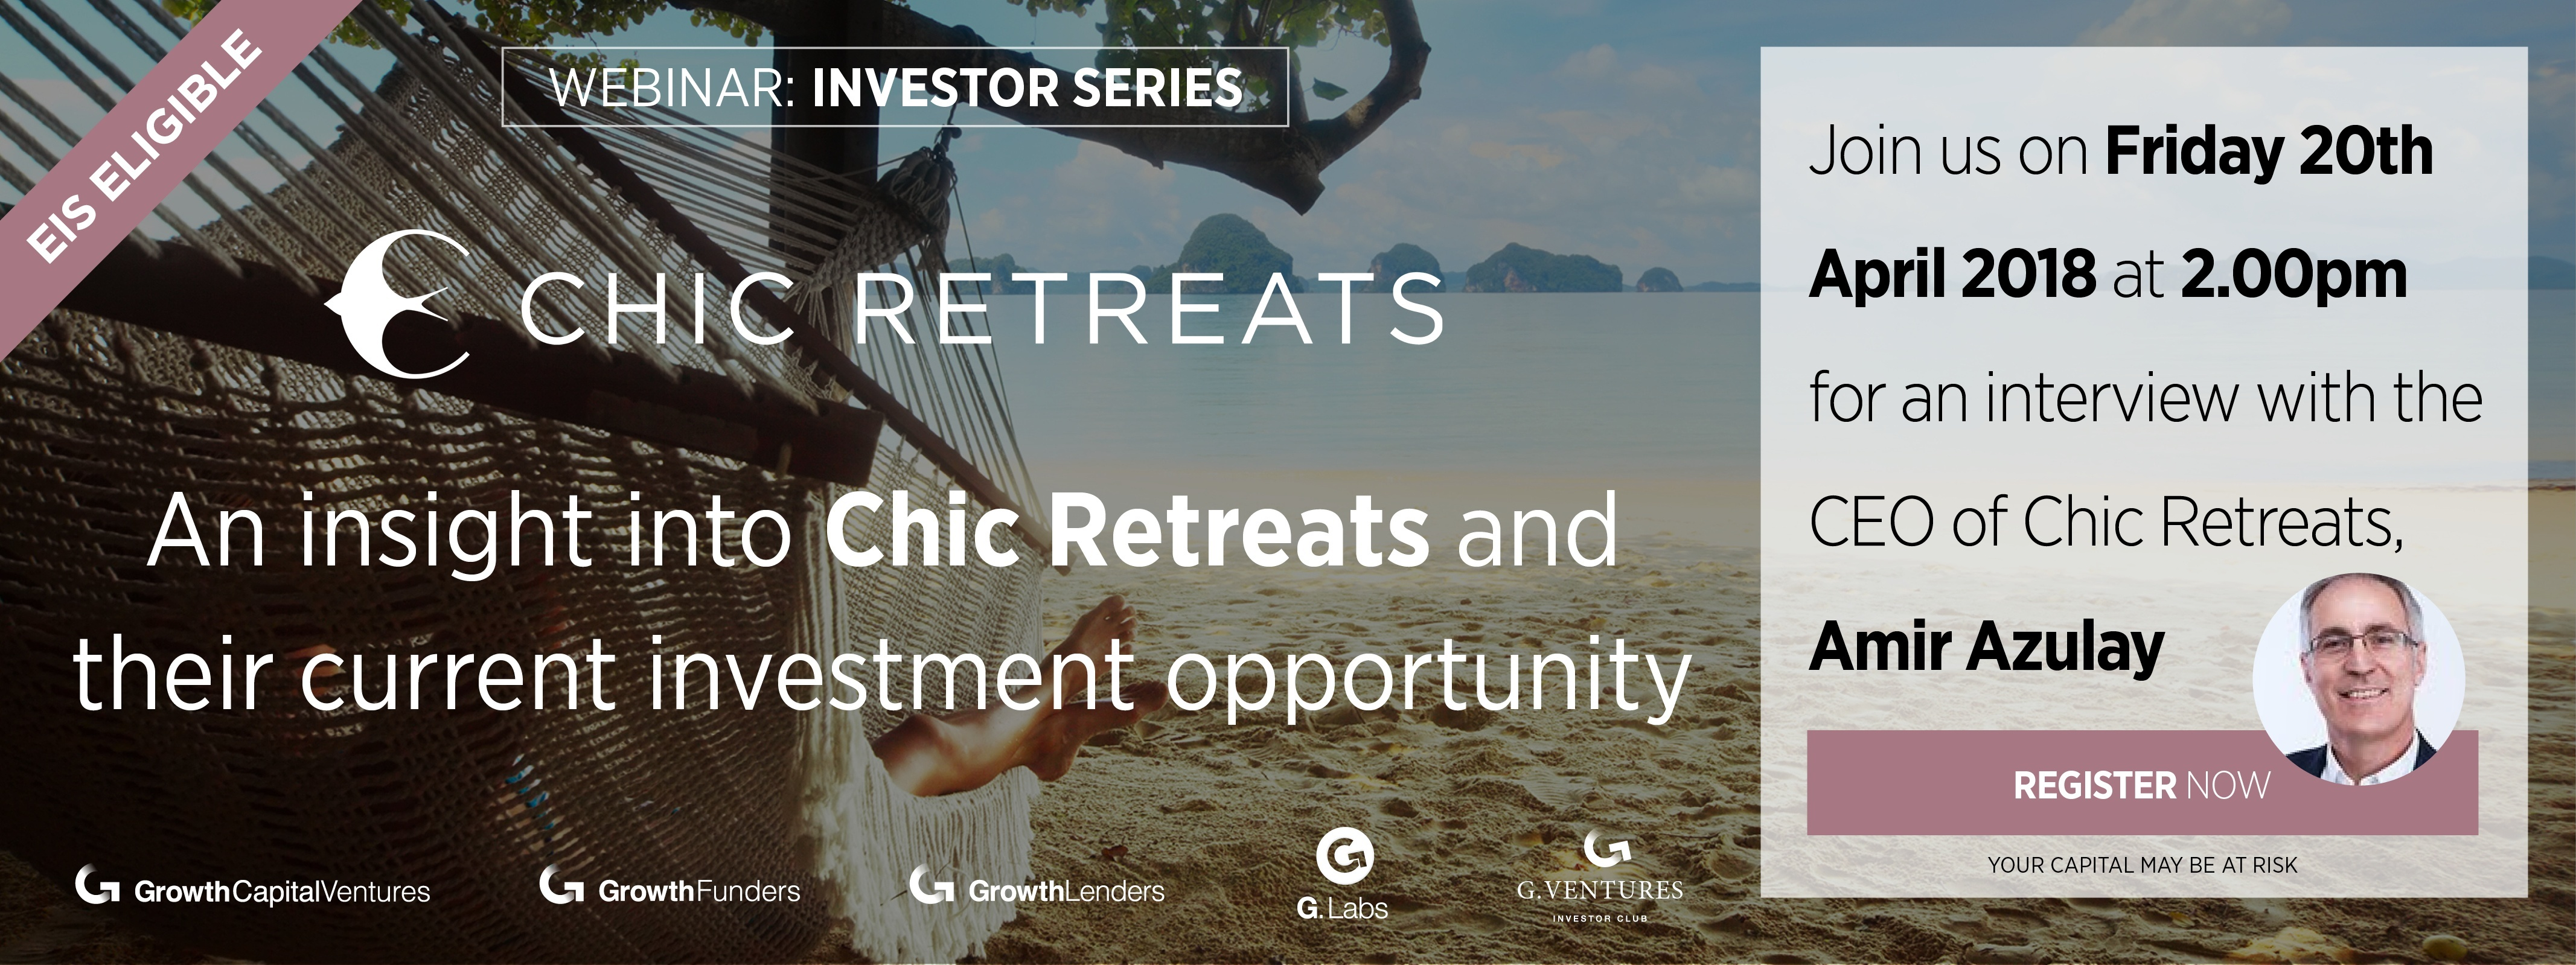 Just for our webinar with Amir Azulay, CEO of Chic Retreats